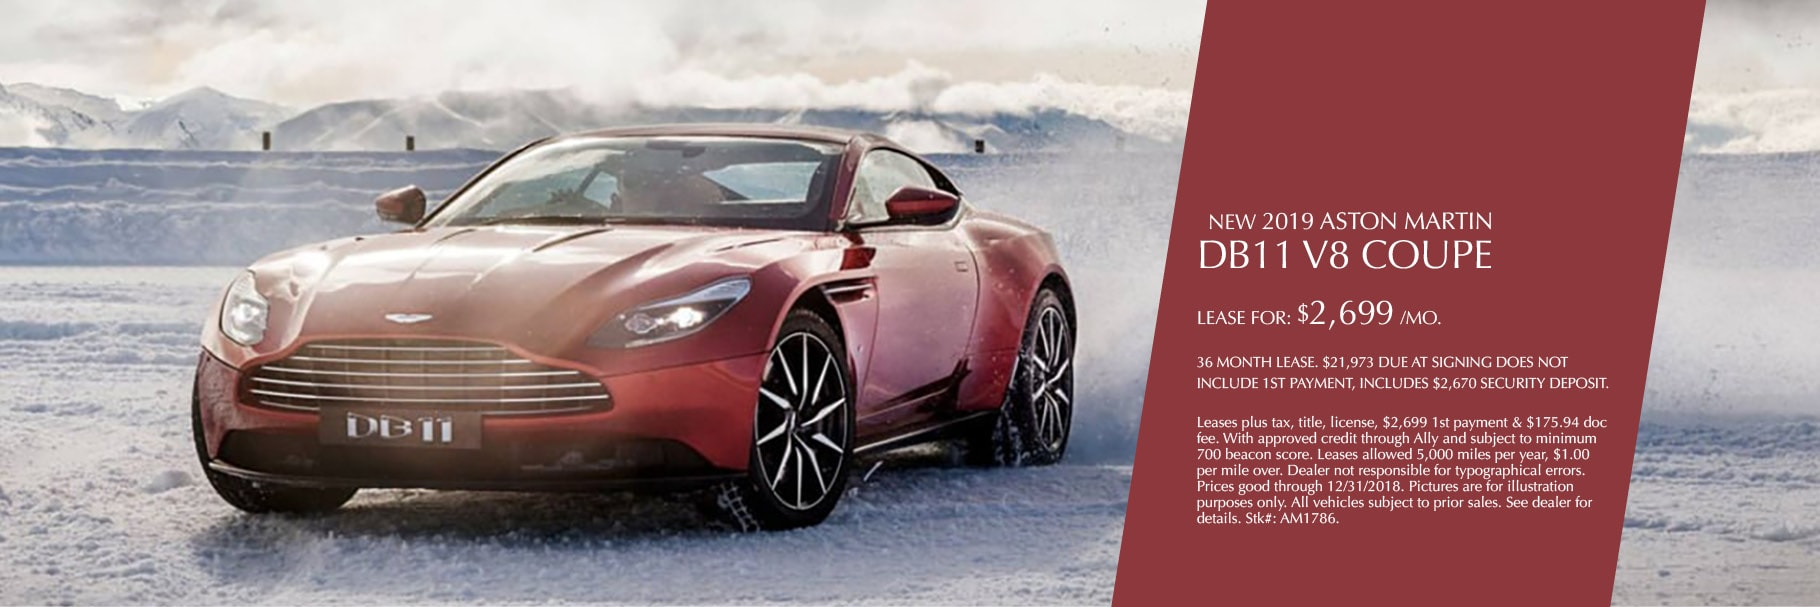 New 2019 Aston Martin DB11 V8 Coupe Lease